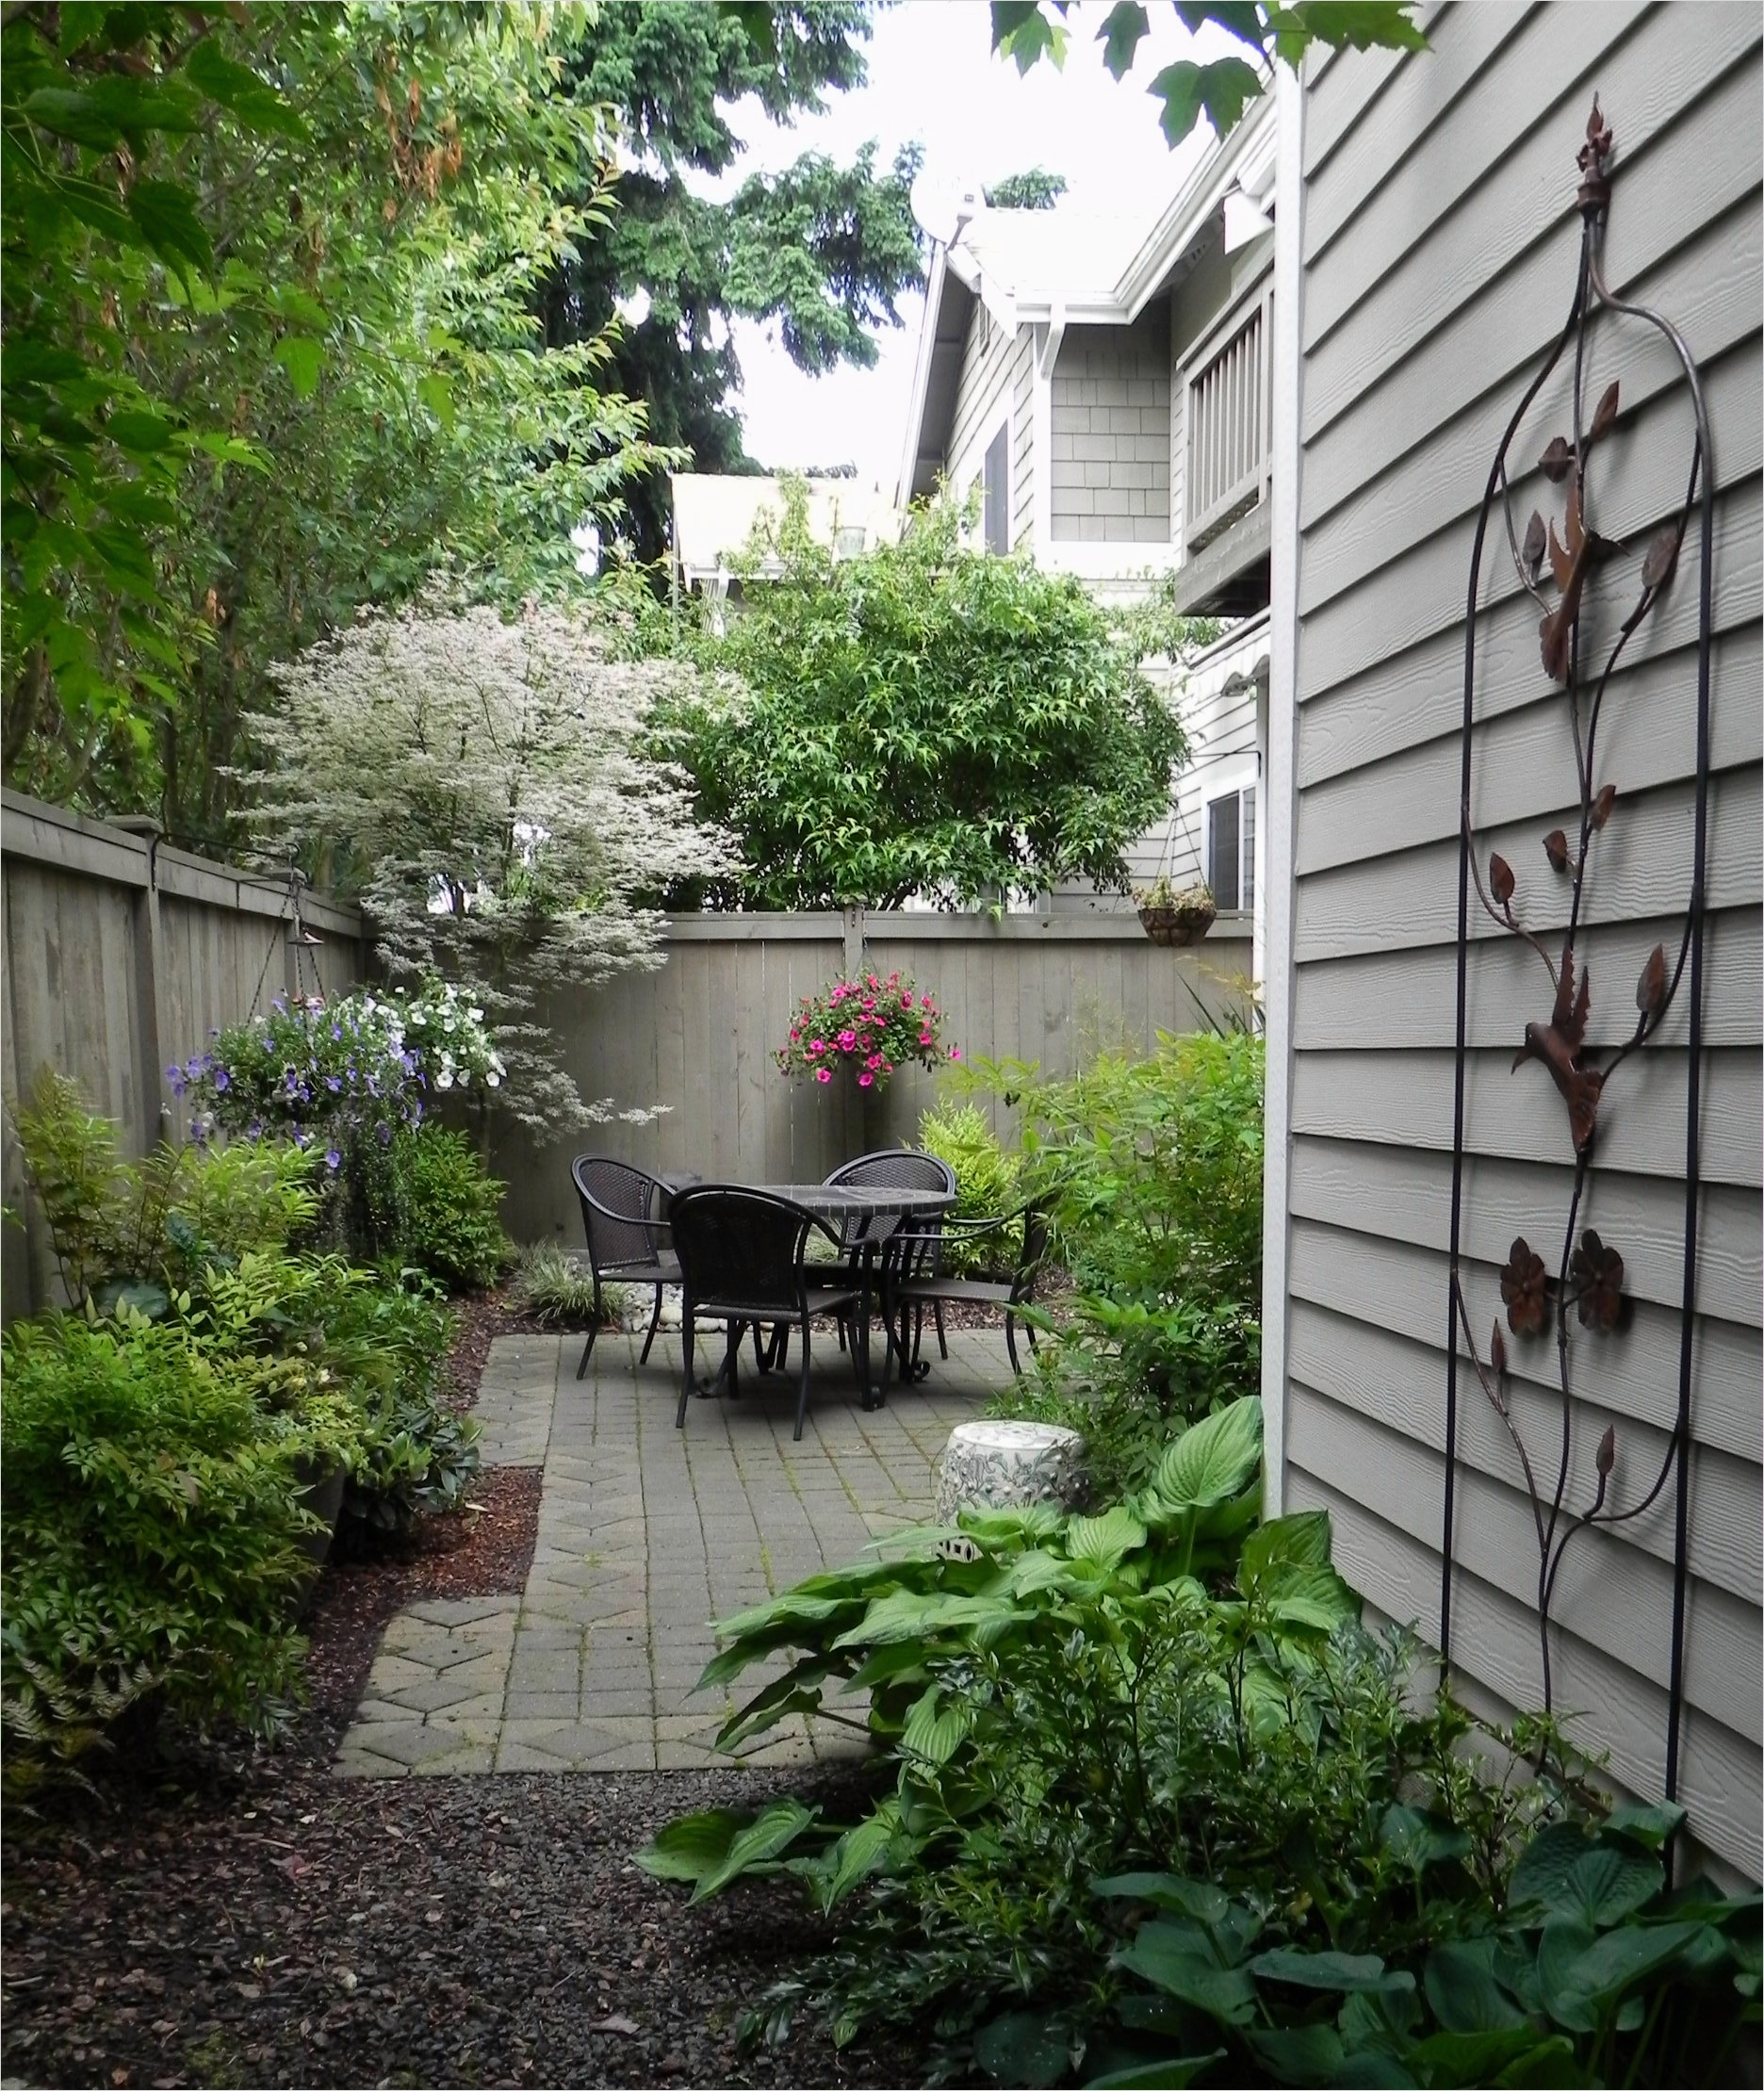 Garden Ideas for Small Spaces 11 25 Landscape Design for Small Spaces 6